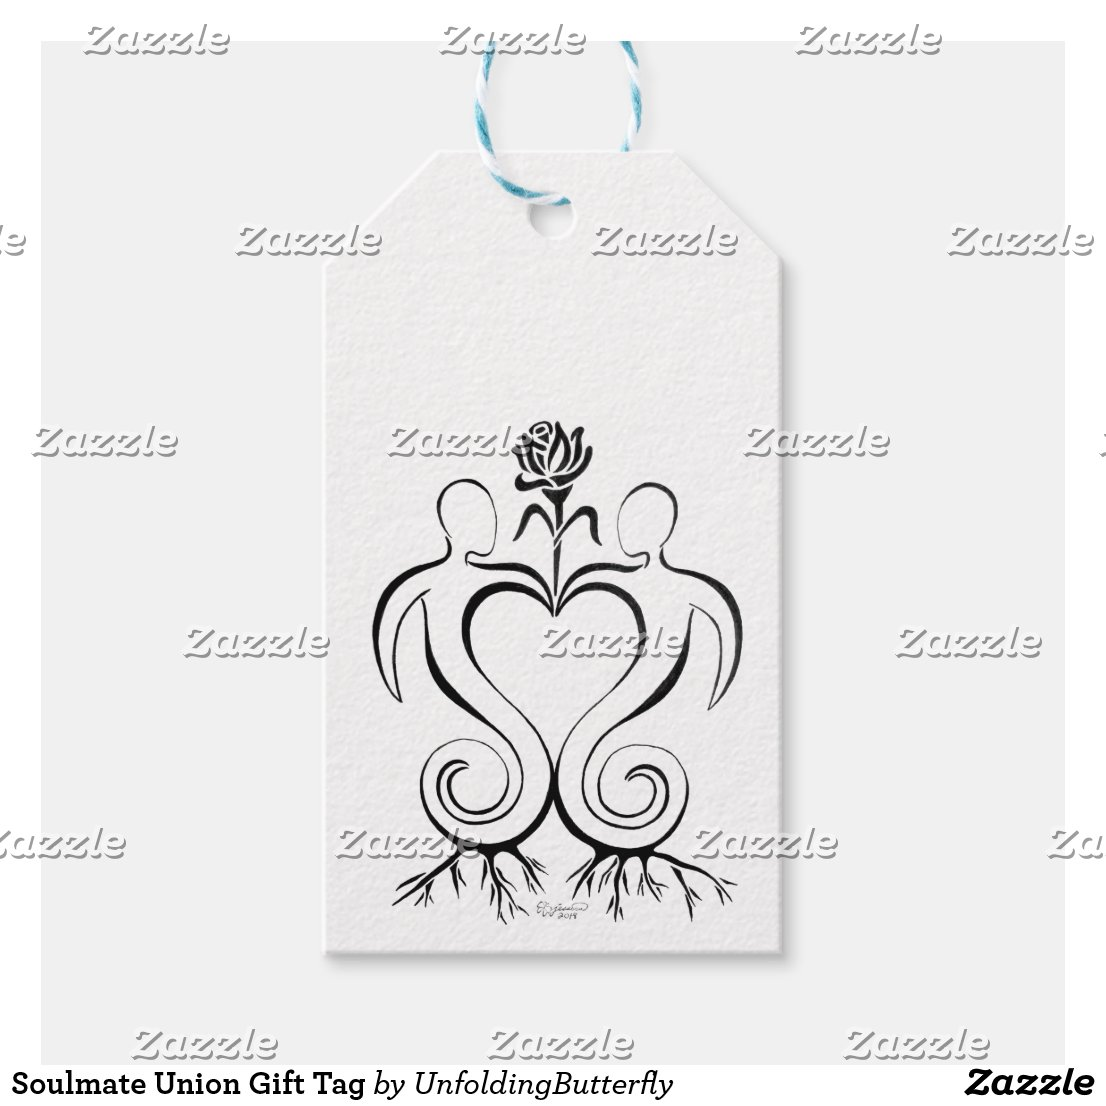 Soulmate Union Gift Tag